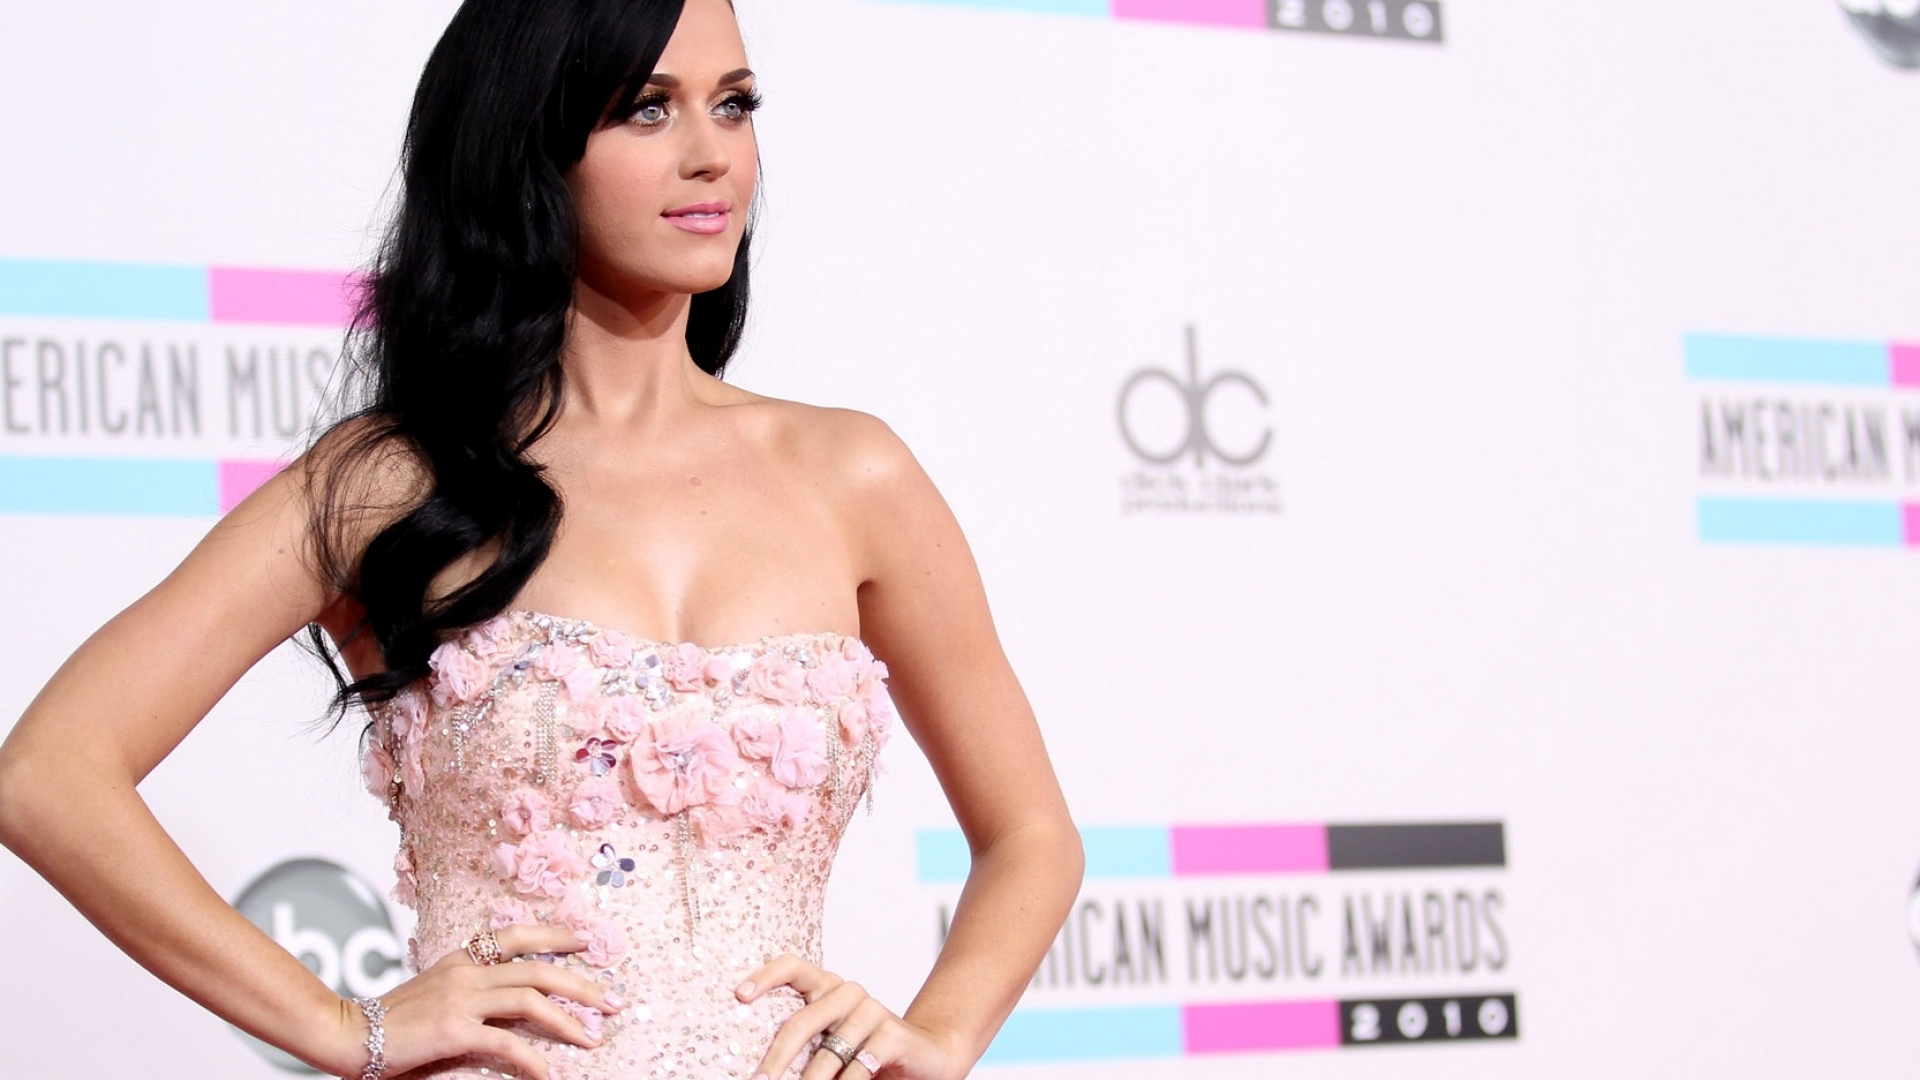 Katy Perry music awards wallpaper